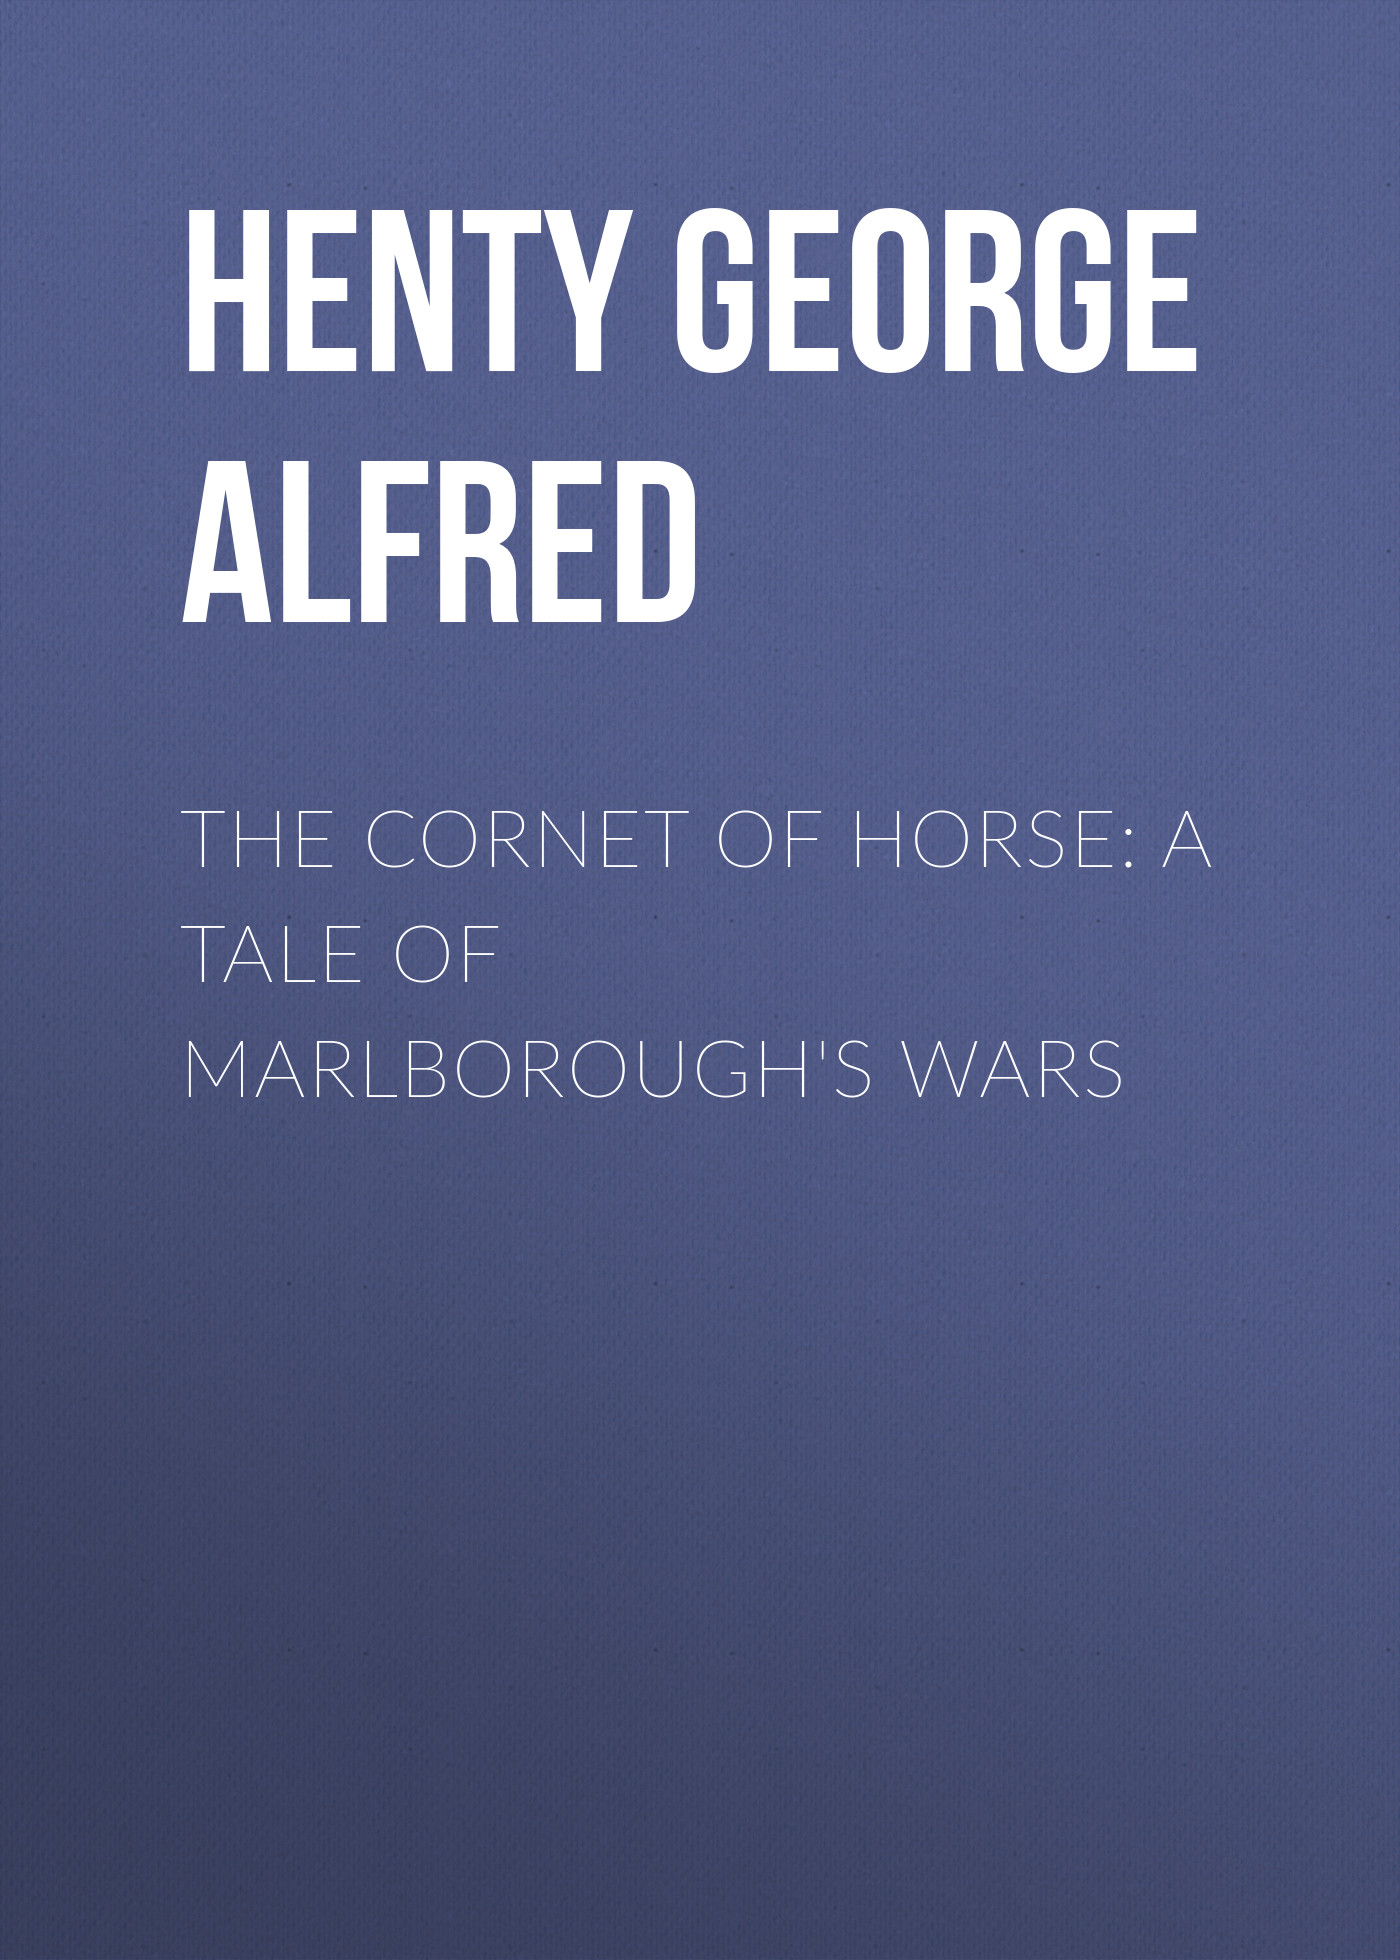 Henty George Alfred The Cornet of Horse: A Tale of Marlborough's Wars henty george alfred the curse of carne s hold a tale of adventure